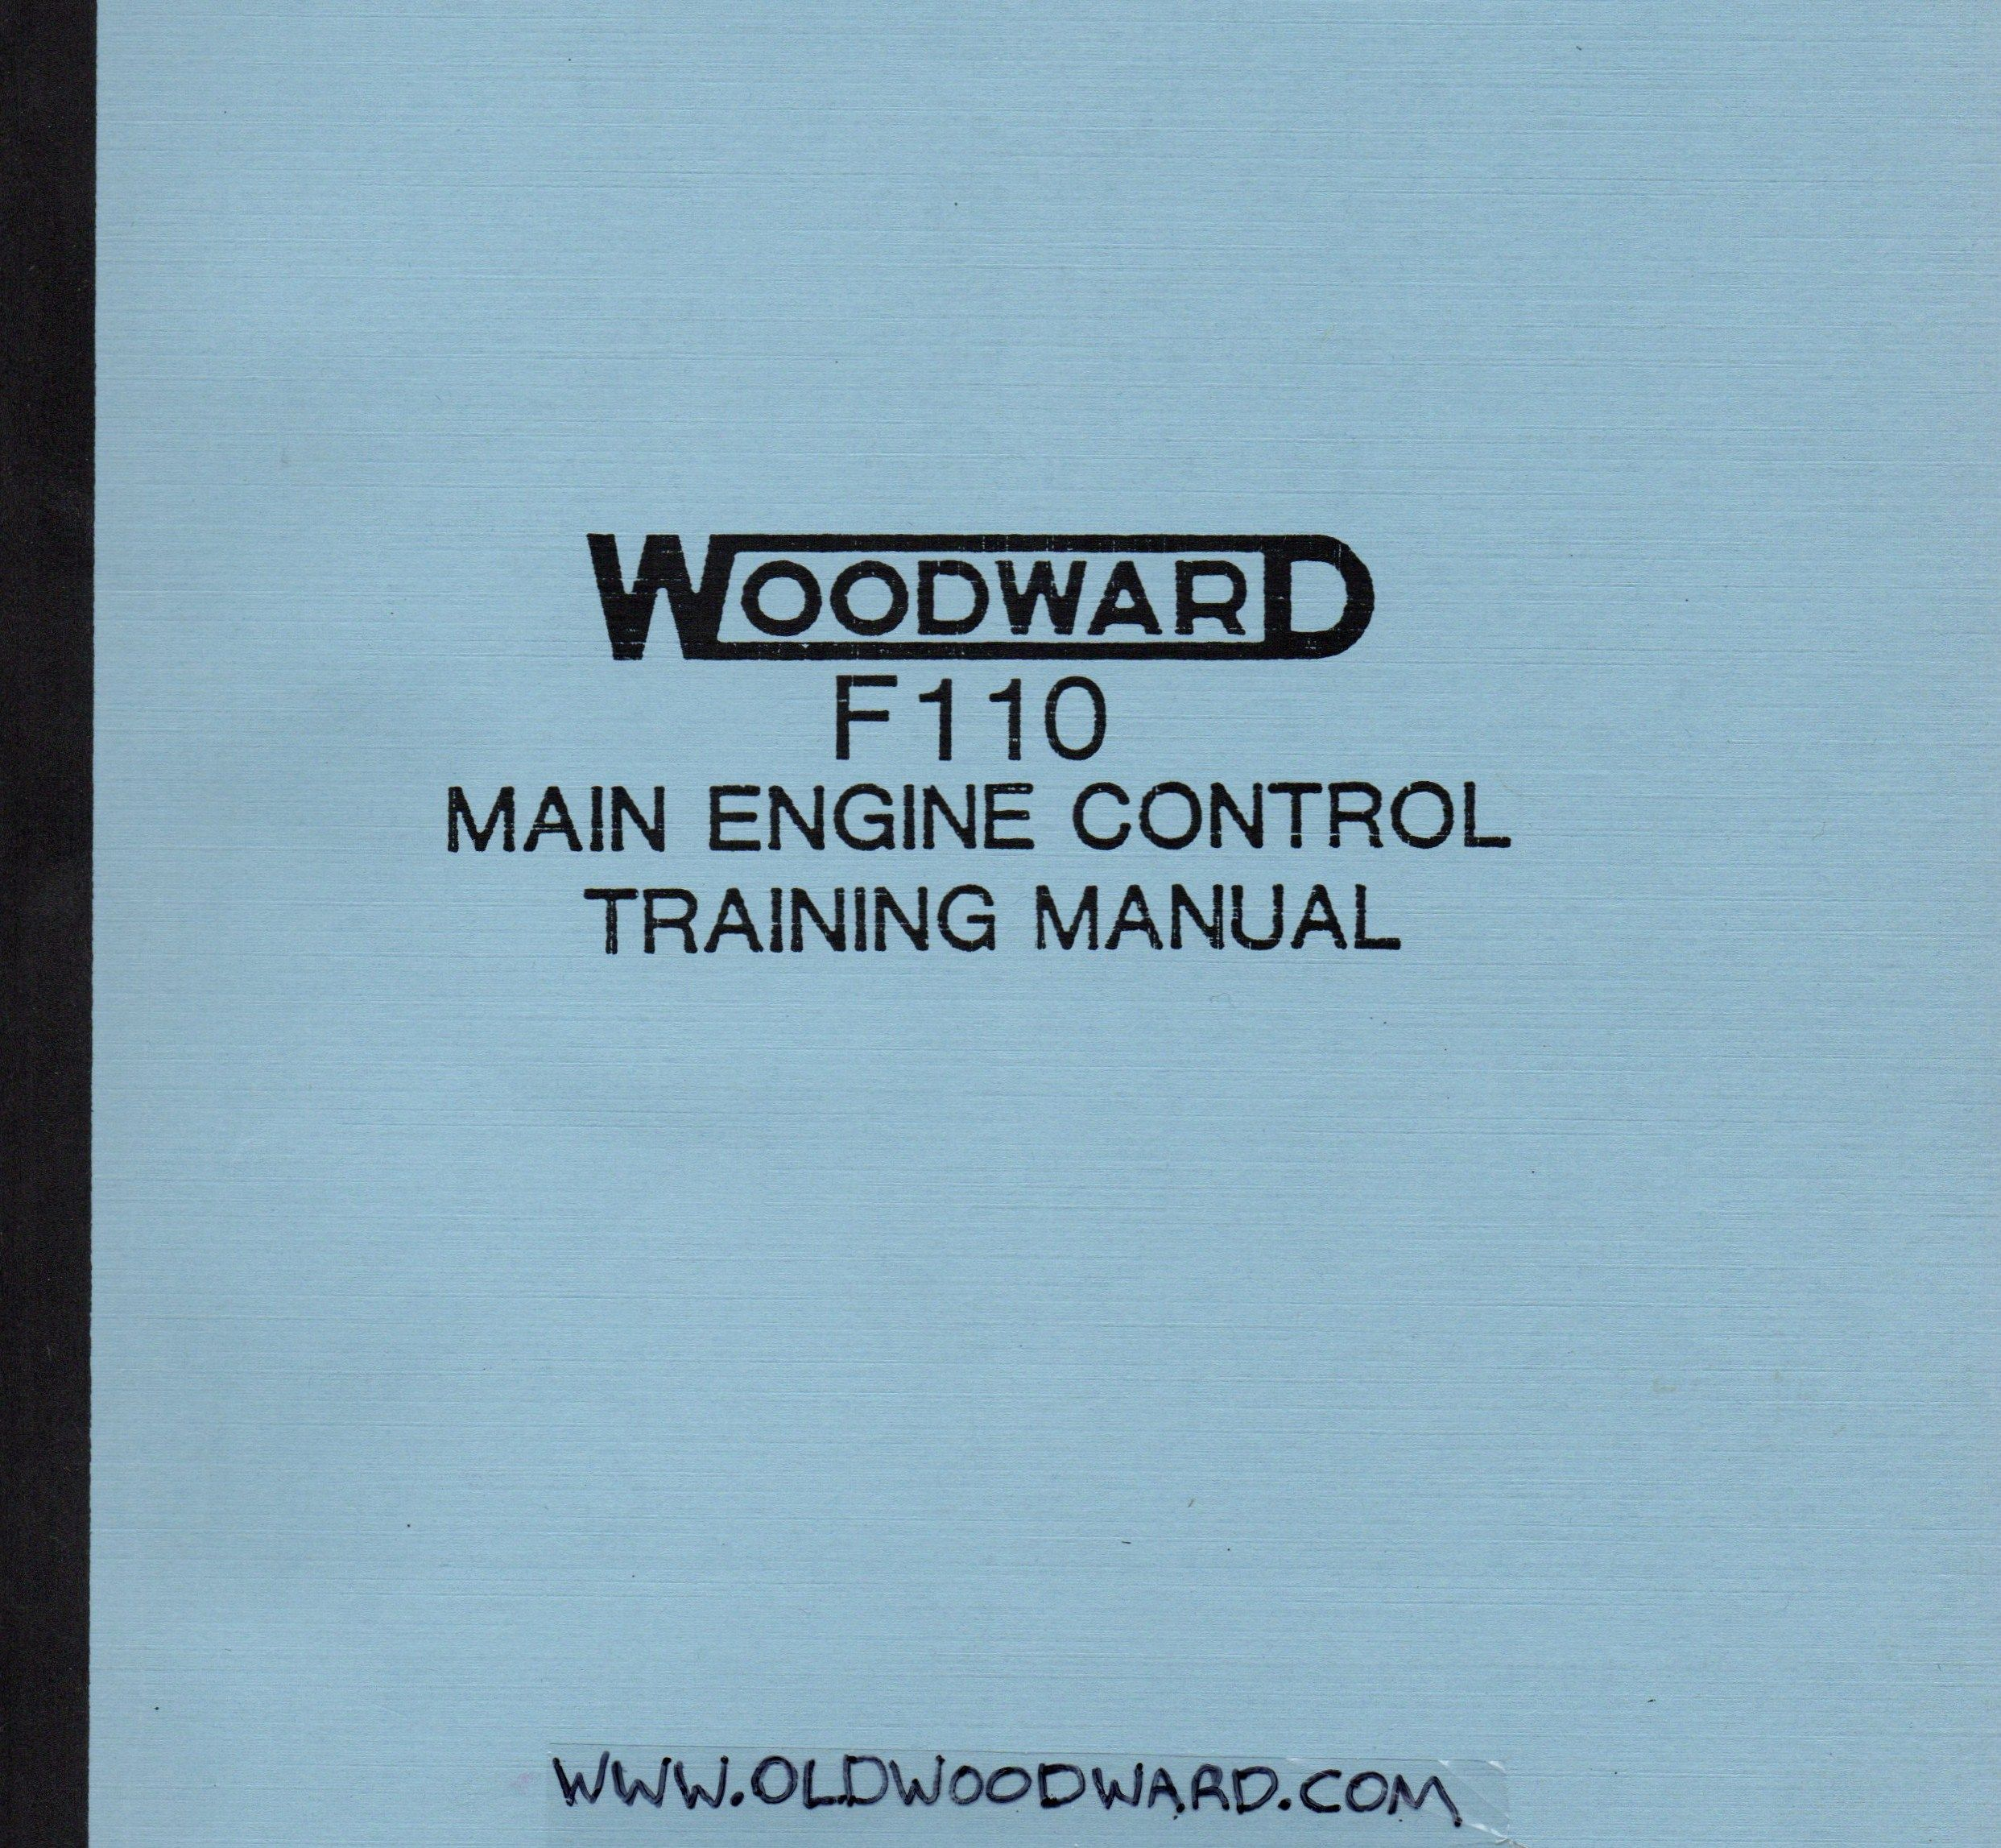 Woodward s fuel control training manual for the G E F110 series